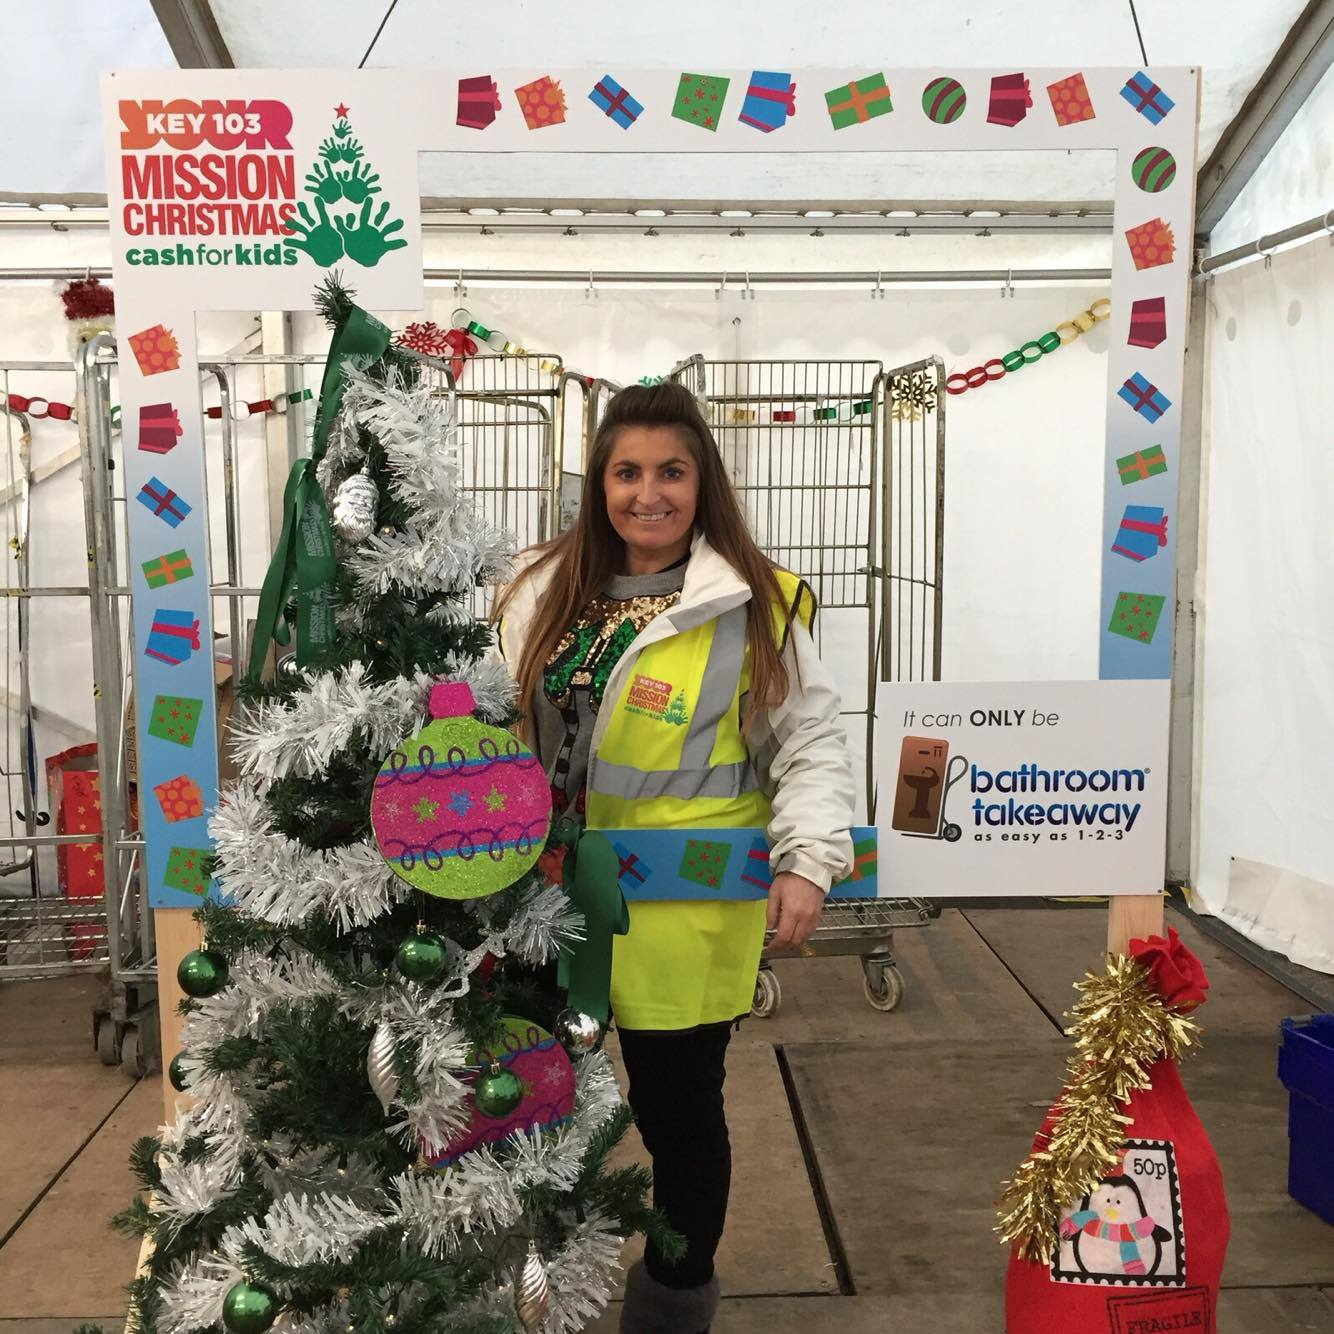 Take Part In Key 103′s Cash For Kid's Christmas Mission